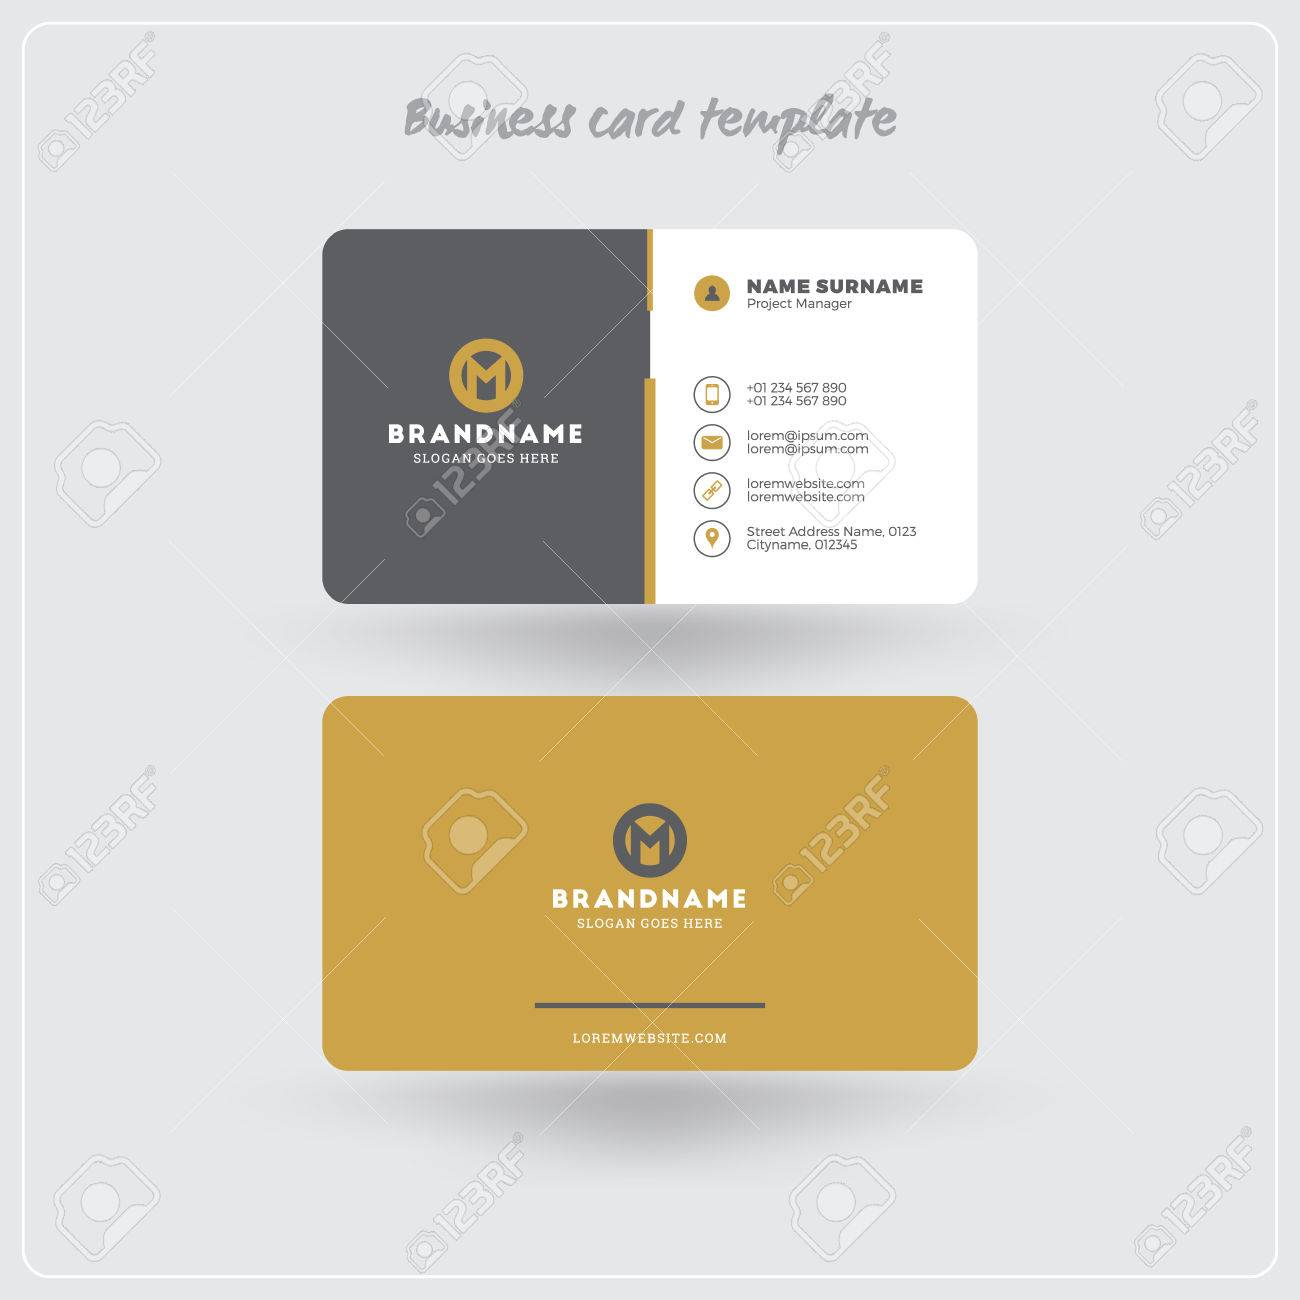 Golden and gray business card print template personal visiting golden and gray business card print template personal visiting card with company logo clean cheaphphosting Image collections